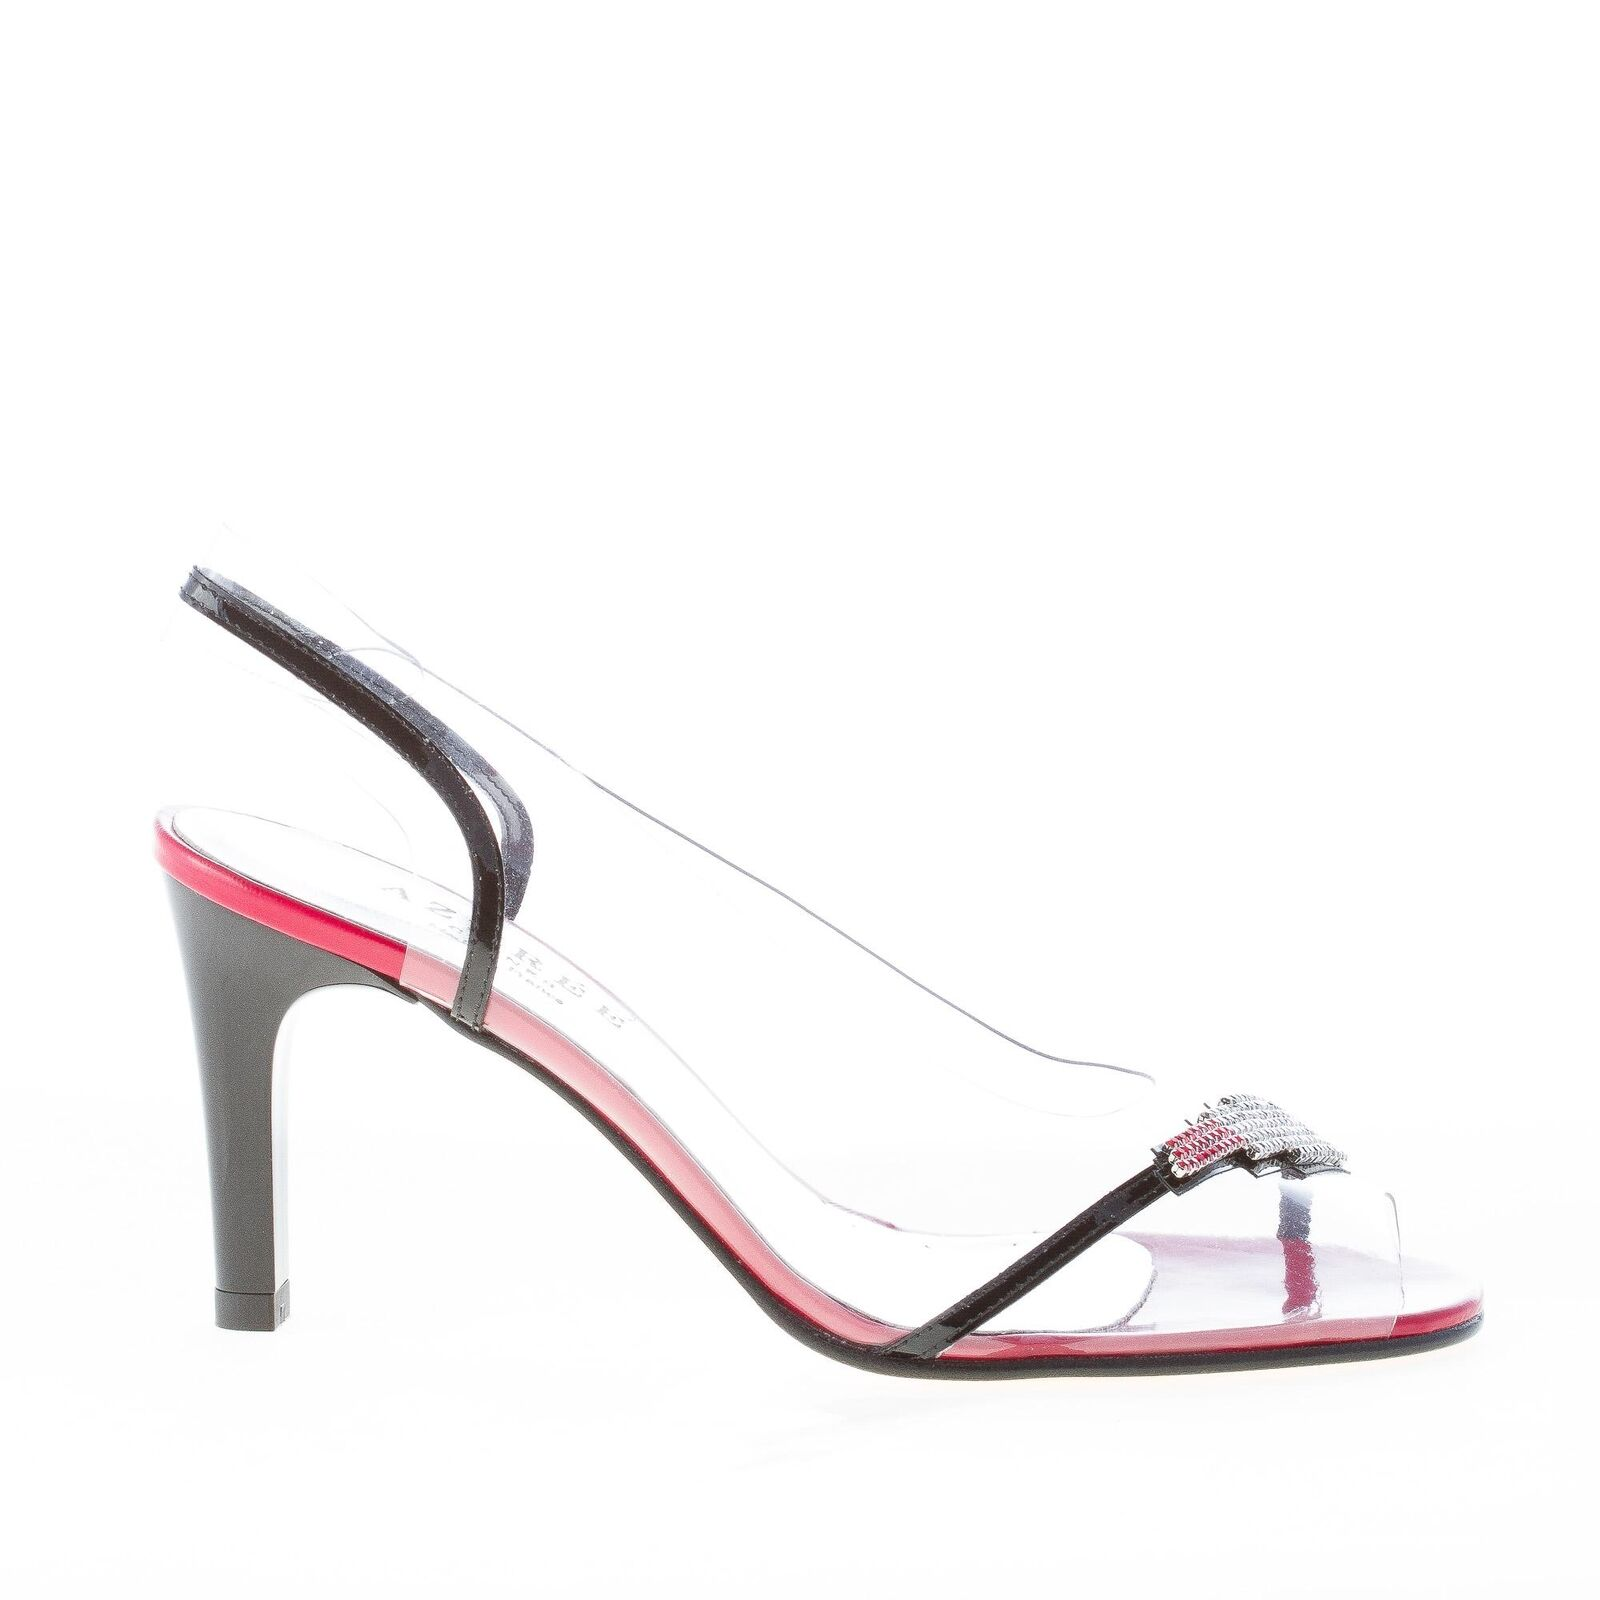 AZUREE CANNES damen schuhe shoes NETISH sandal Red silver strass mouth lipstick